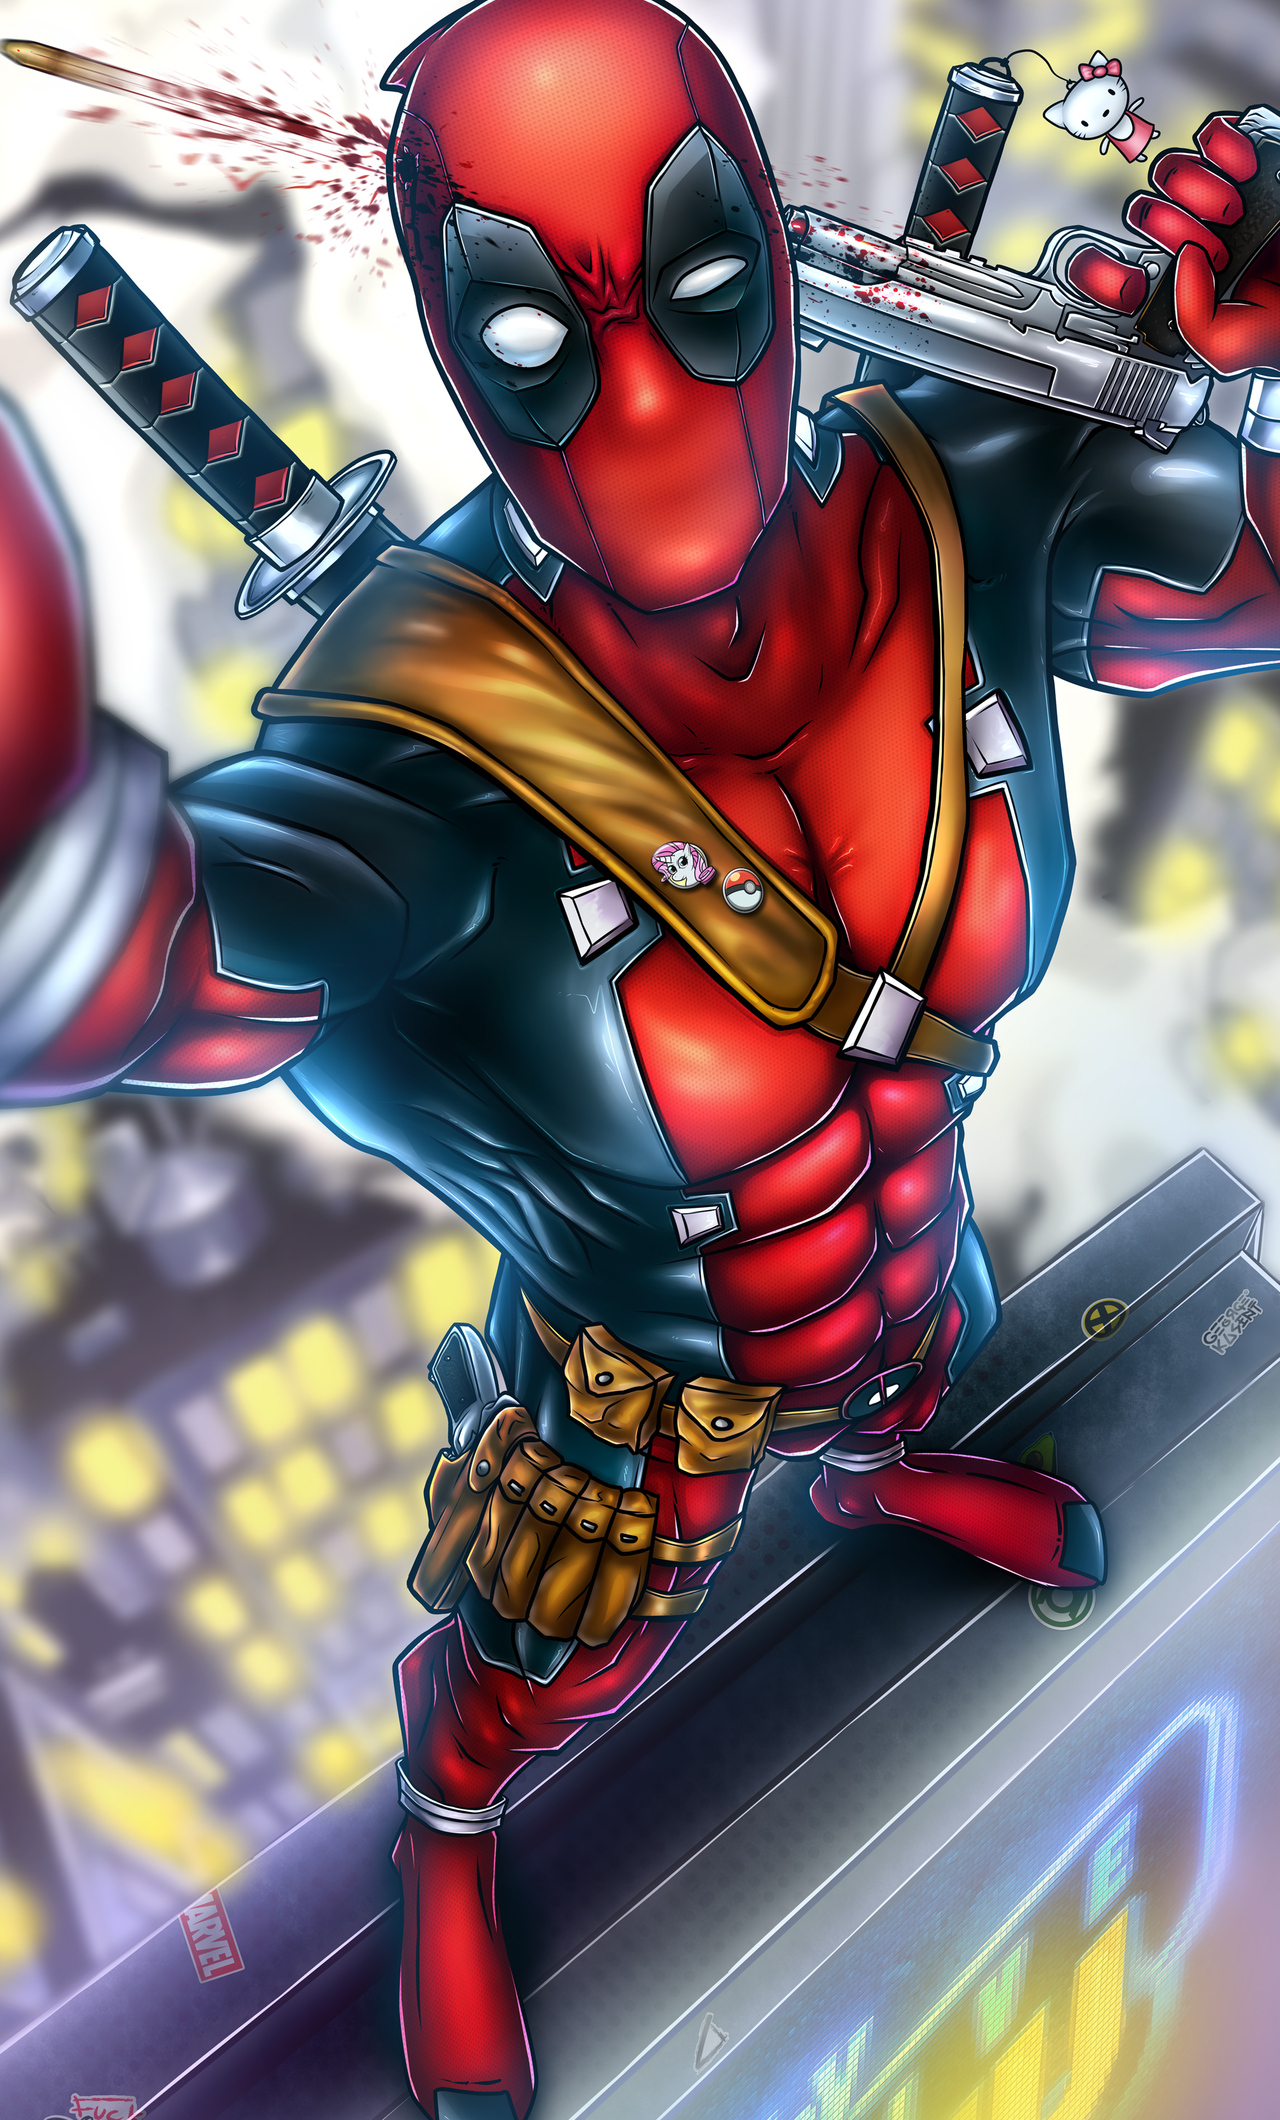 deadpool-clicking-selfie-z1.jpg